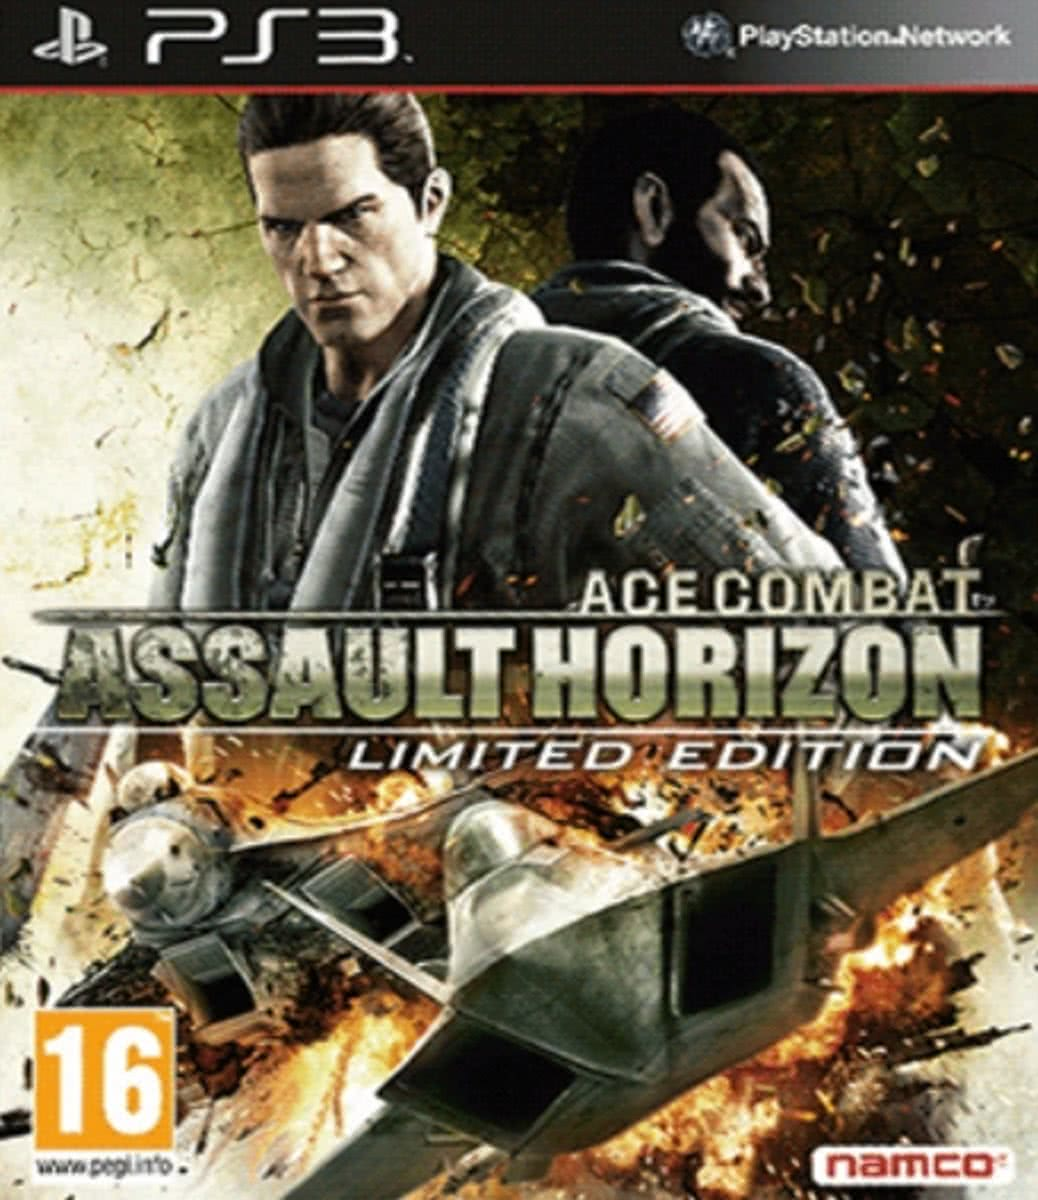 Sony Ace Combat: Assault Horizon Limited Edition, PS3 Basic + DLC PlayStation 3 video-game